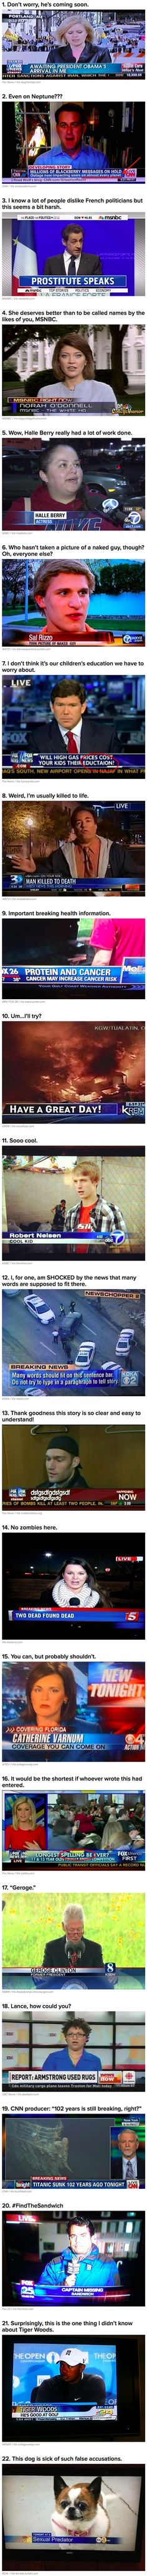 Here are some funny news captions you will not believe are real.